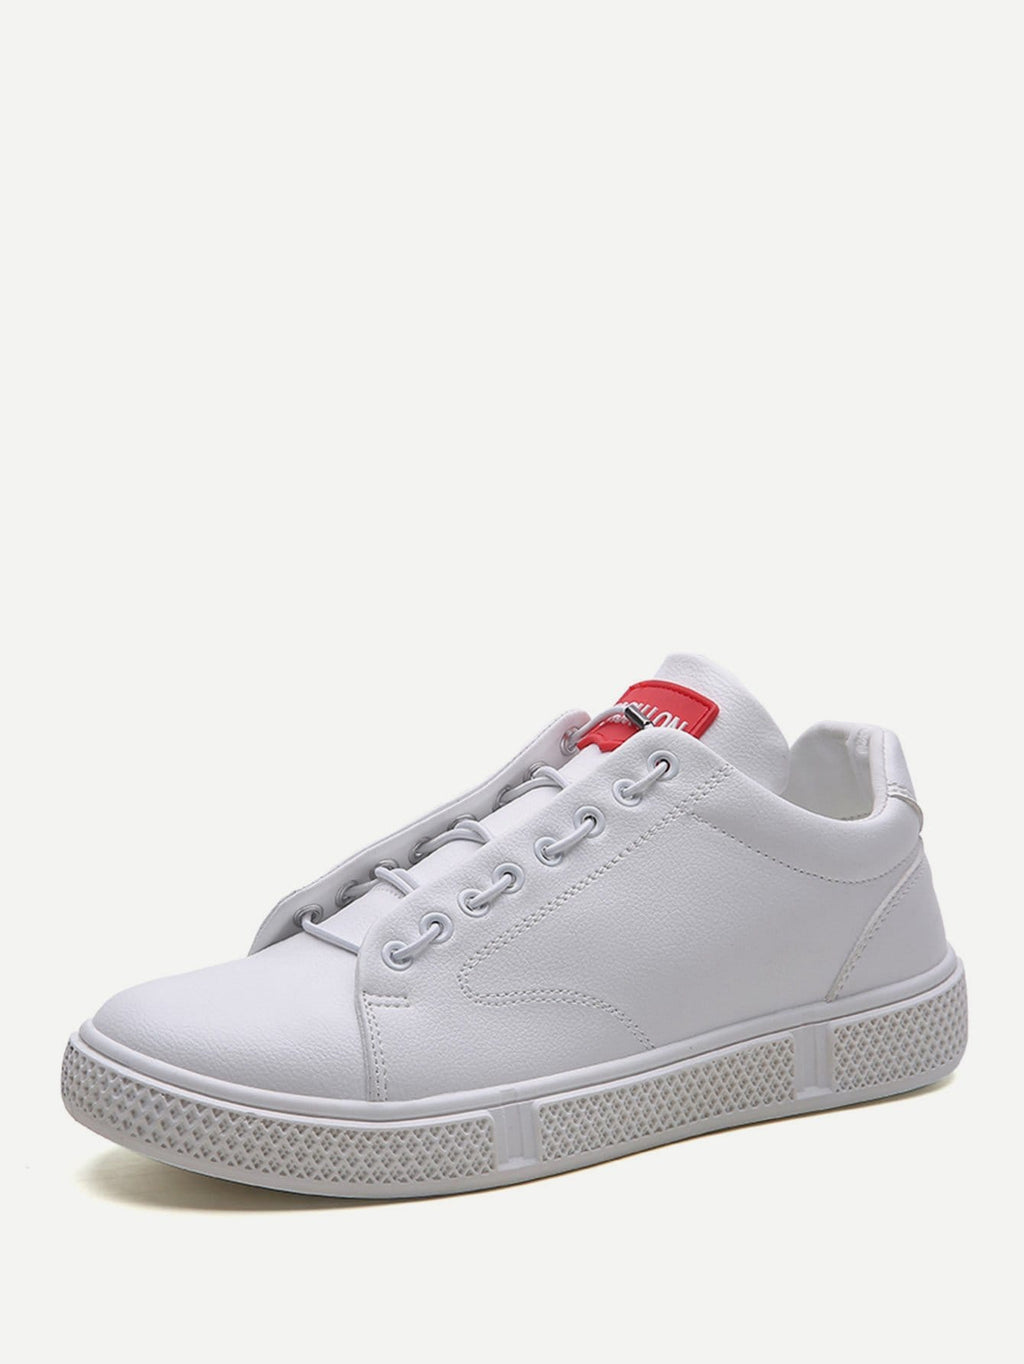 Men's Sneakers - Lace Up Low Top Sneakers